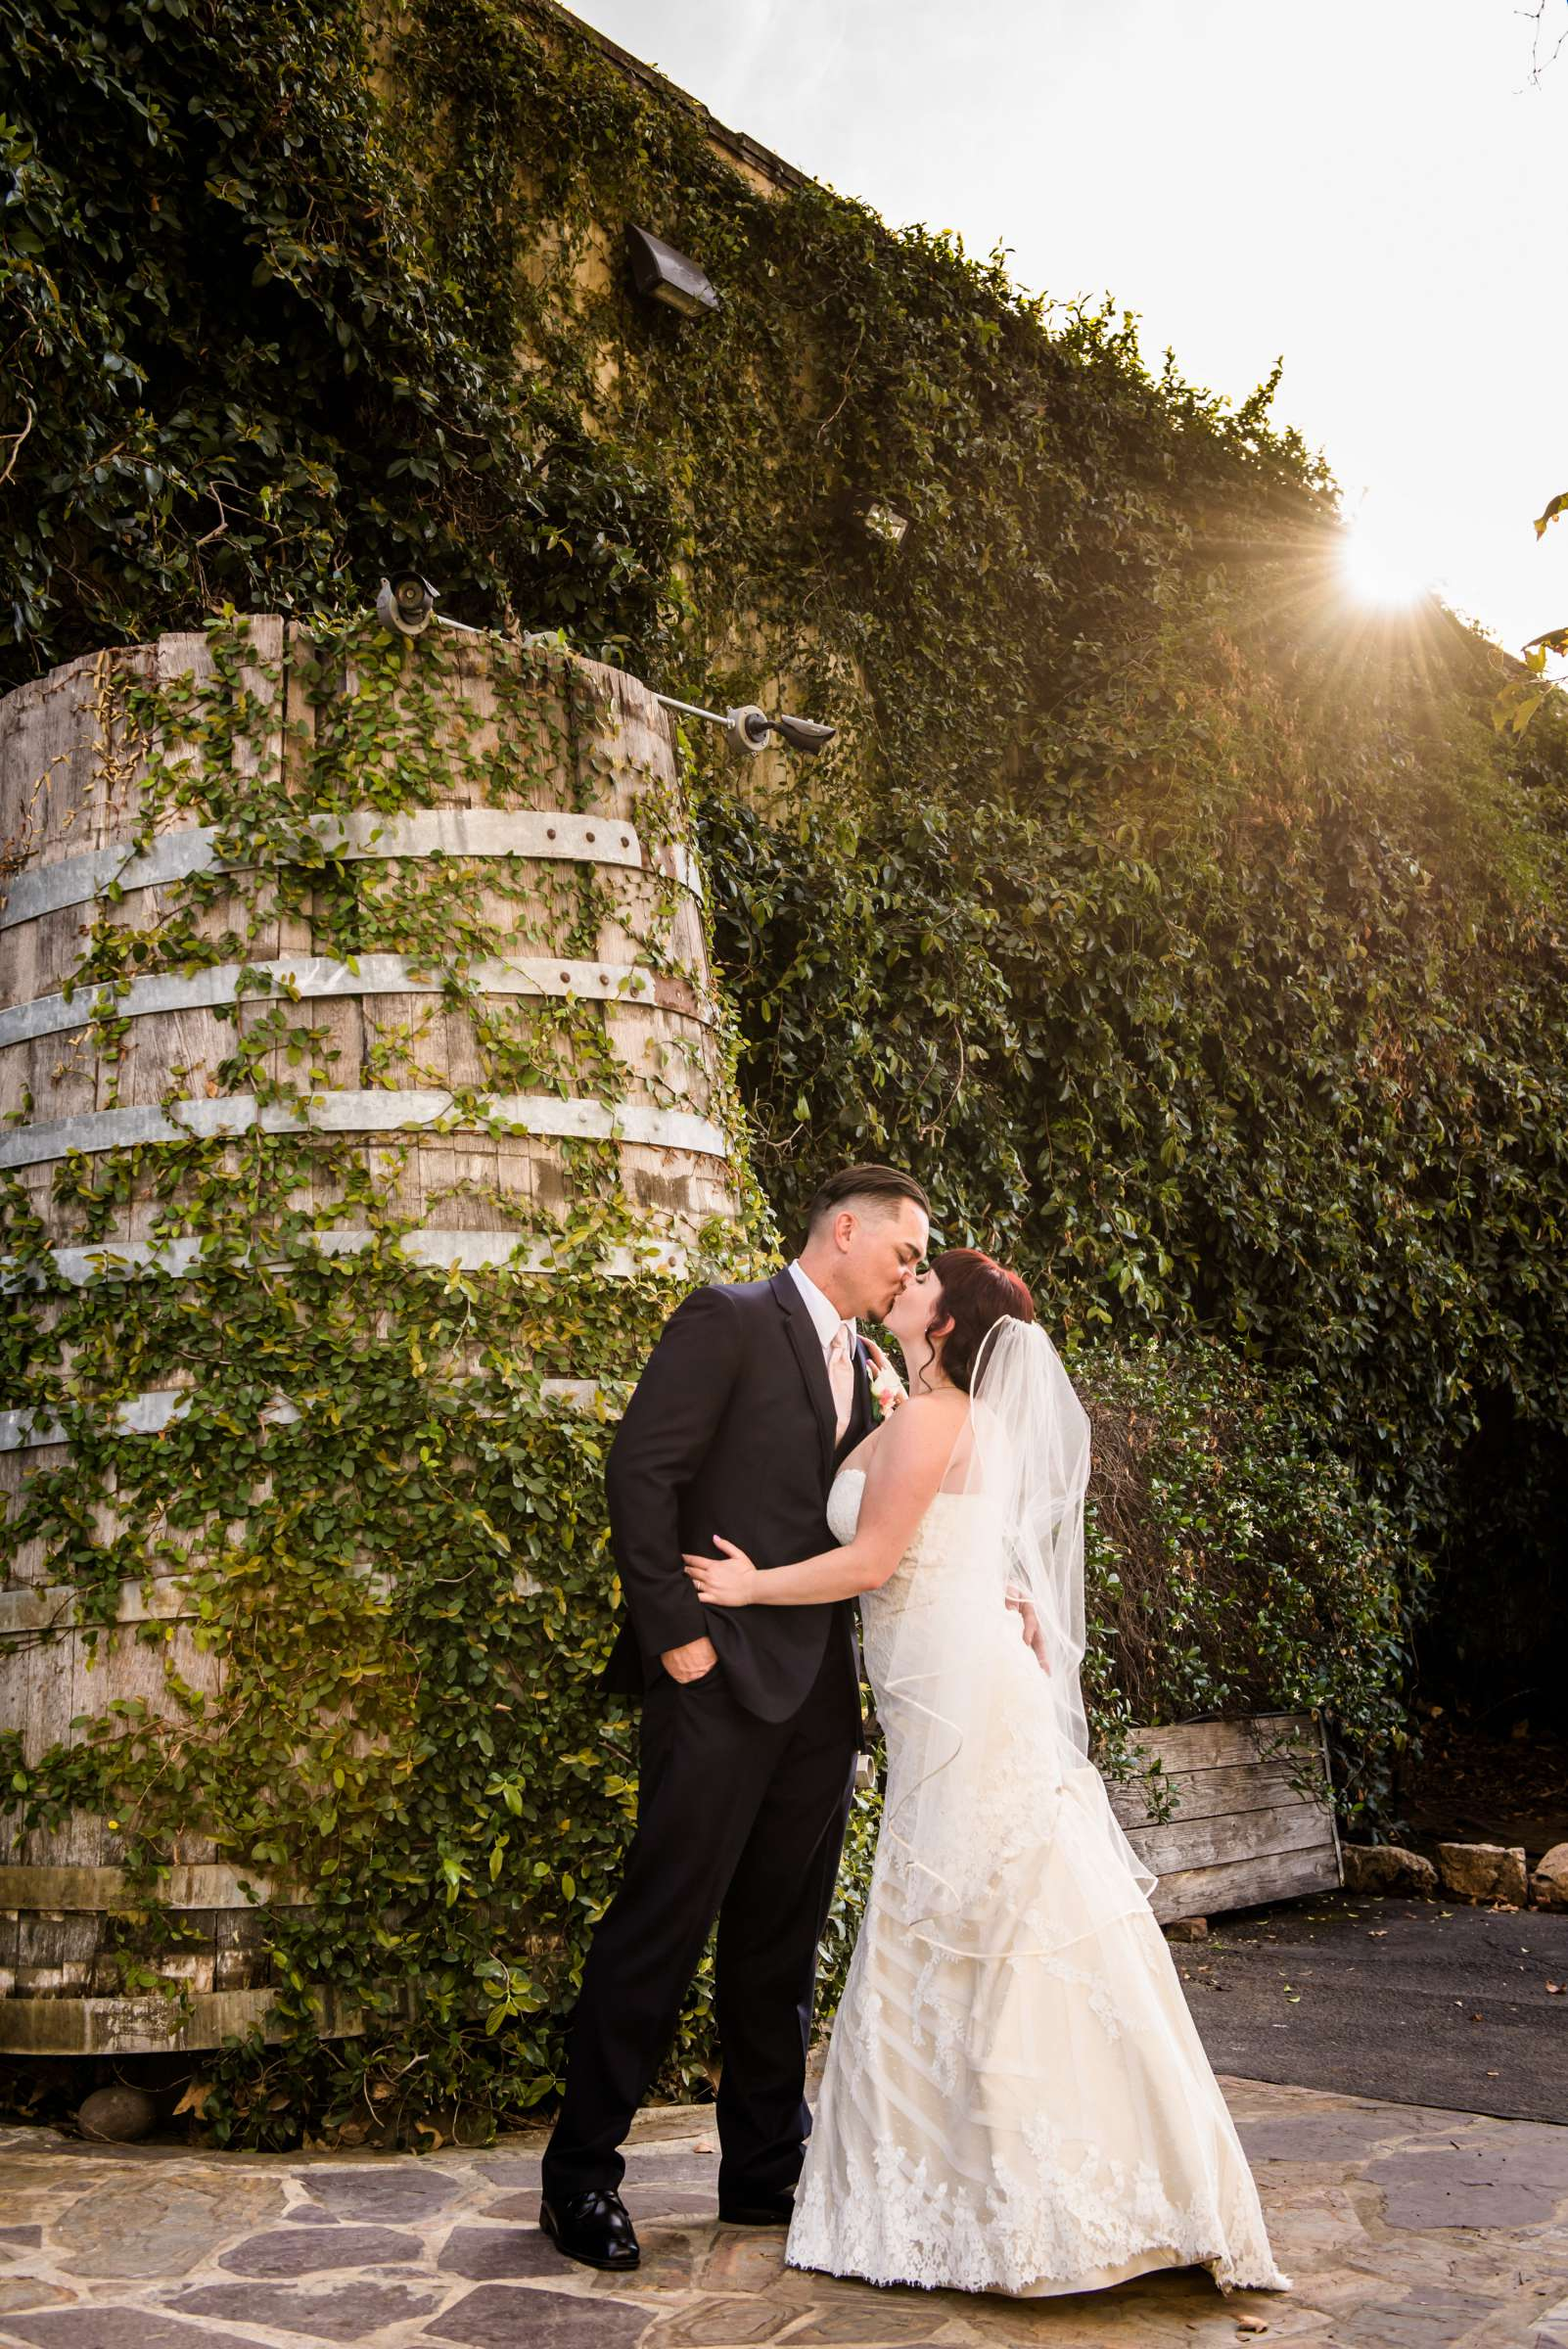 Orfila Vineyards Wedding, Tulasi and Richard Wedding Photo #1 by True Photography